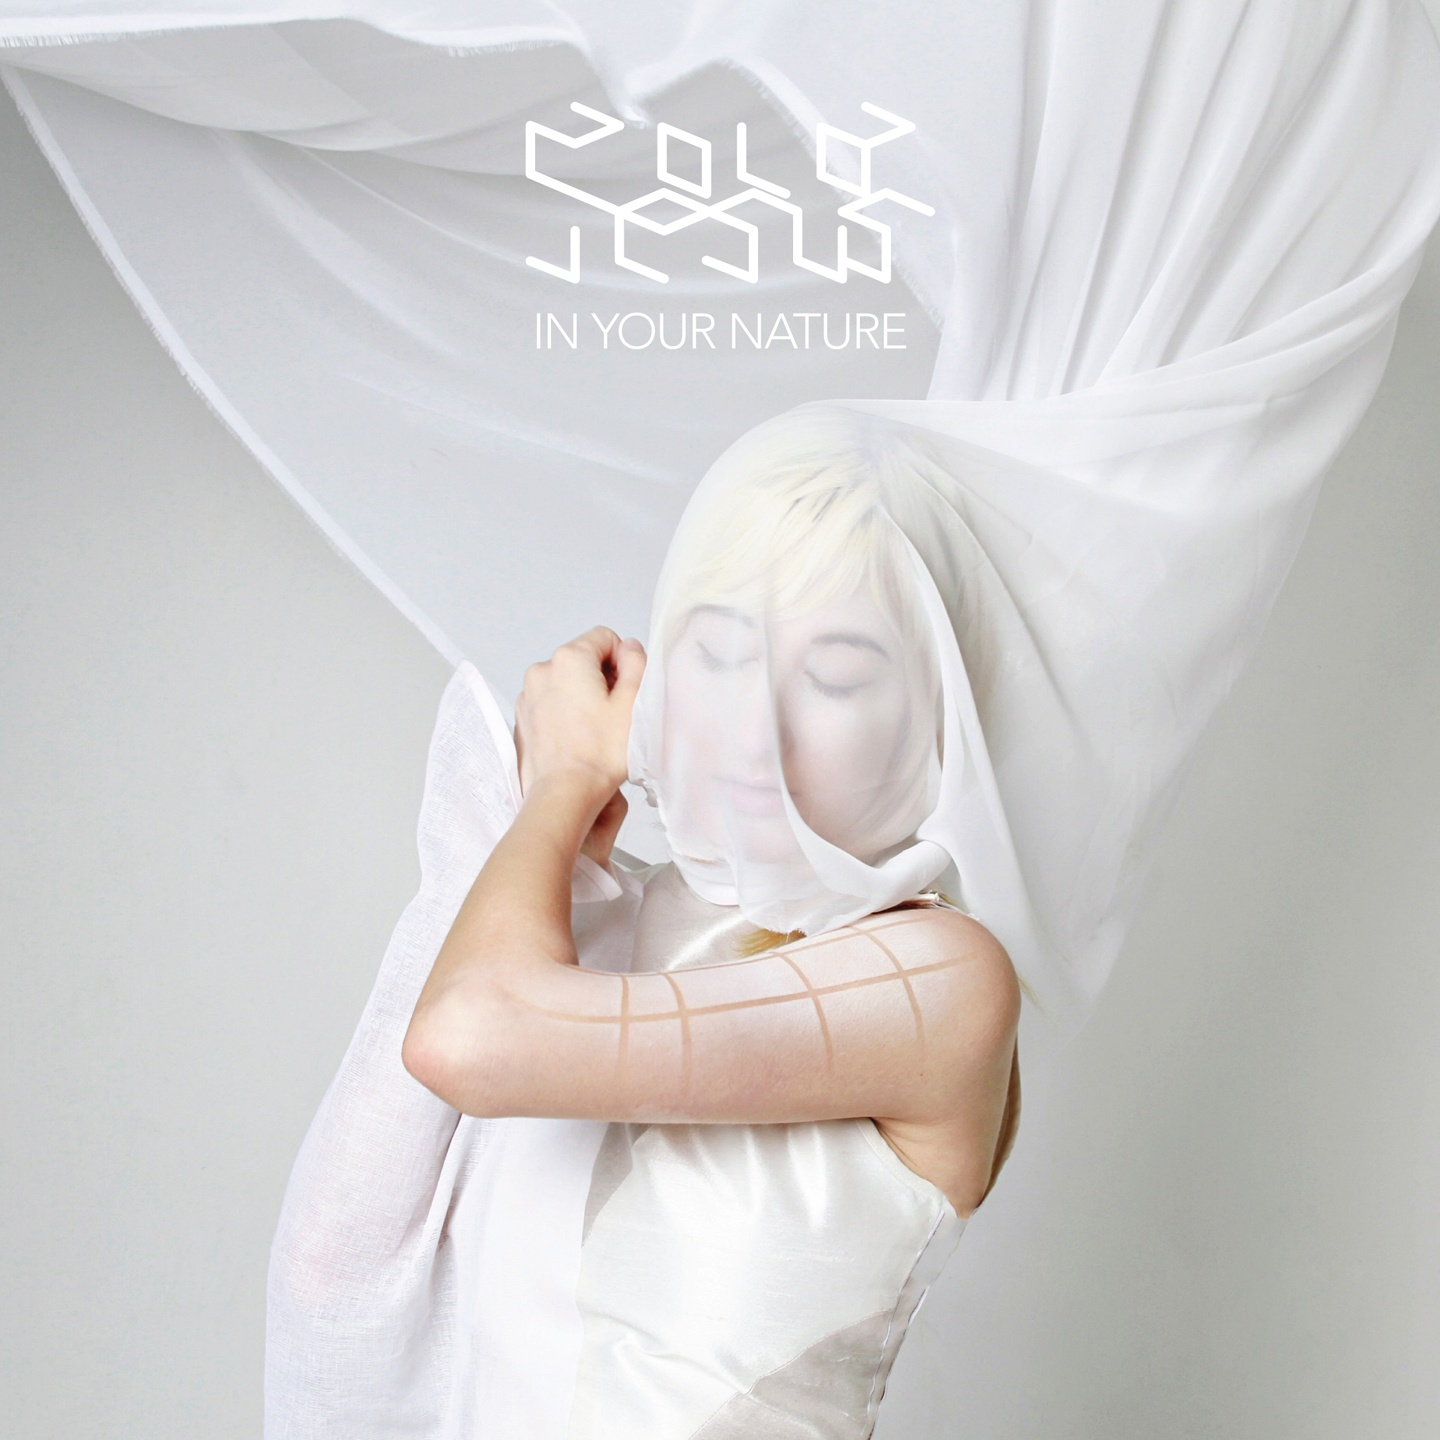 Cover ZOLA JESUS, in your nature